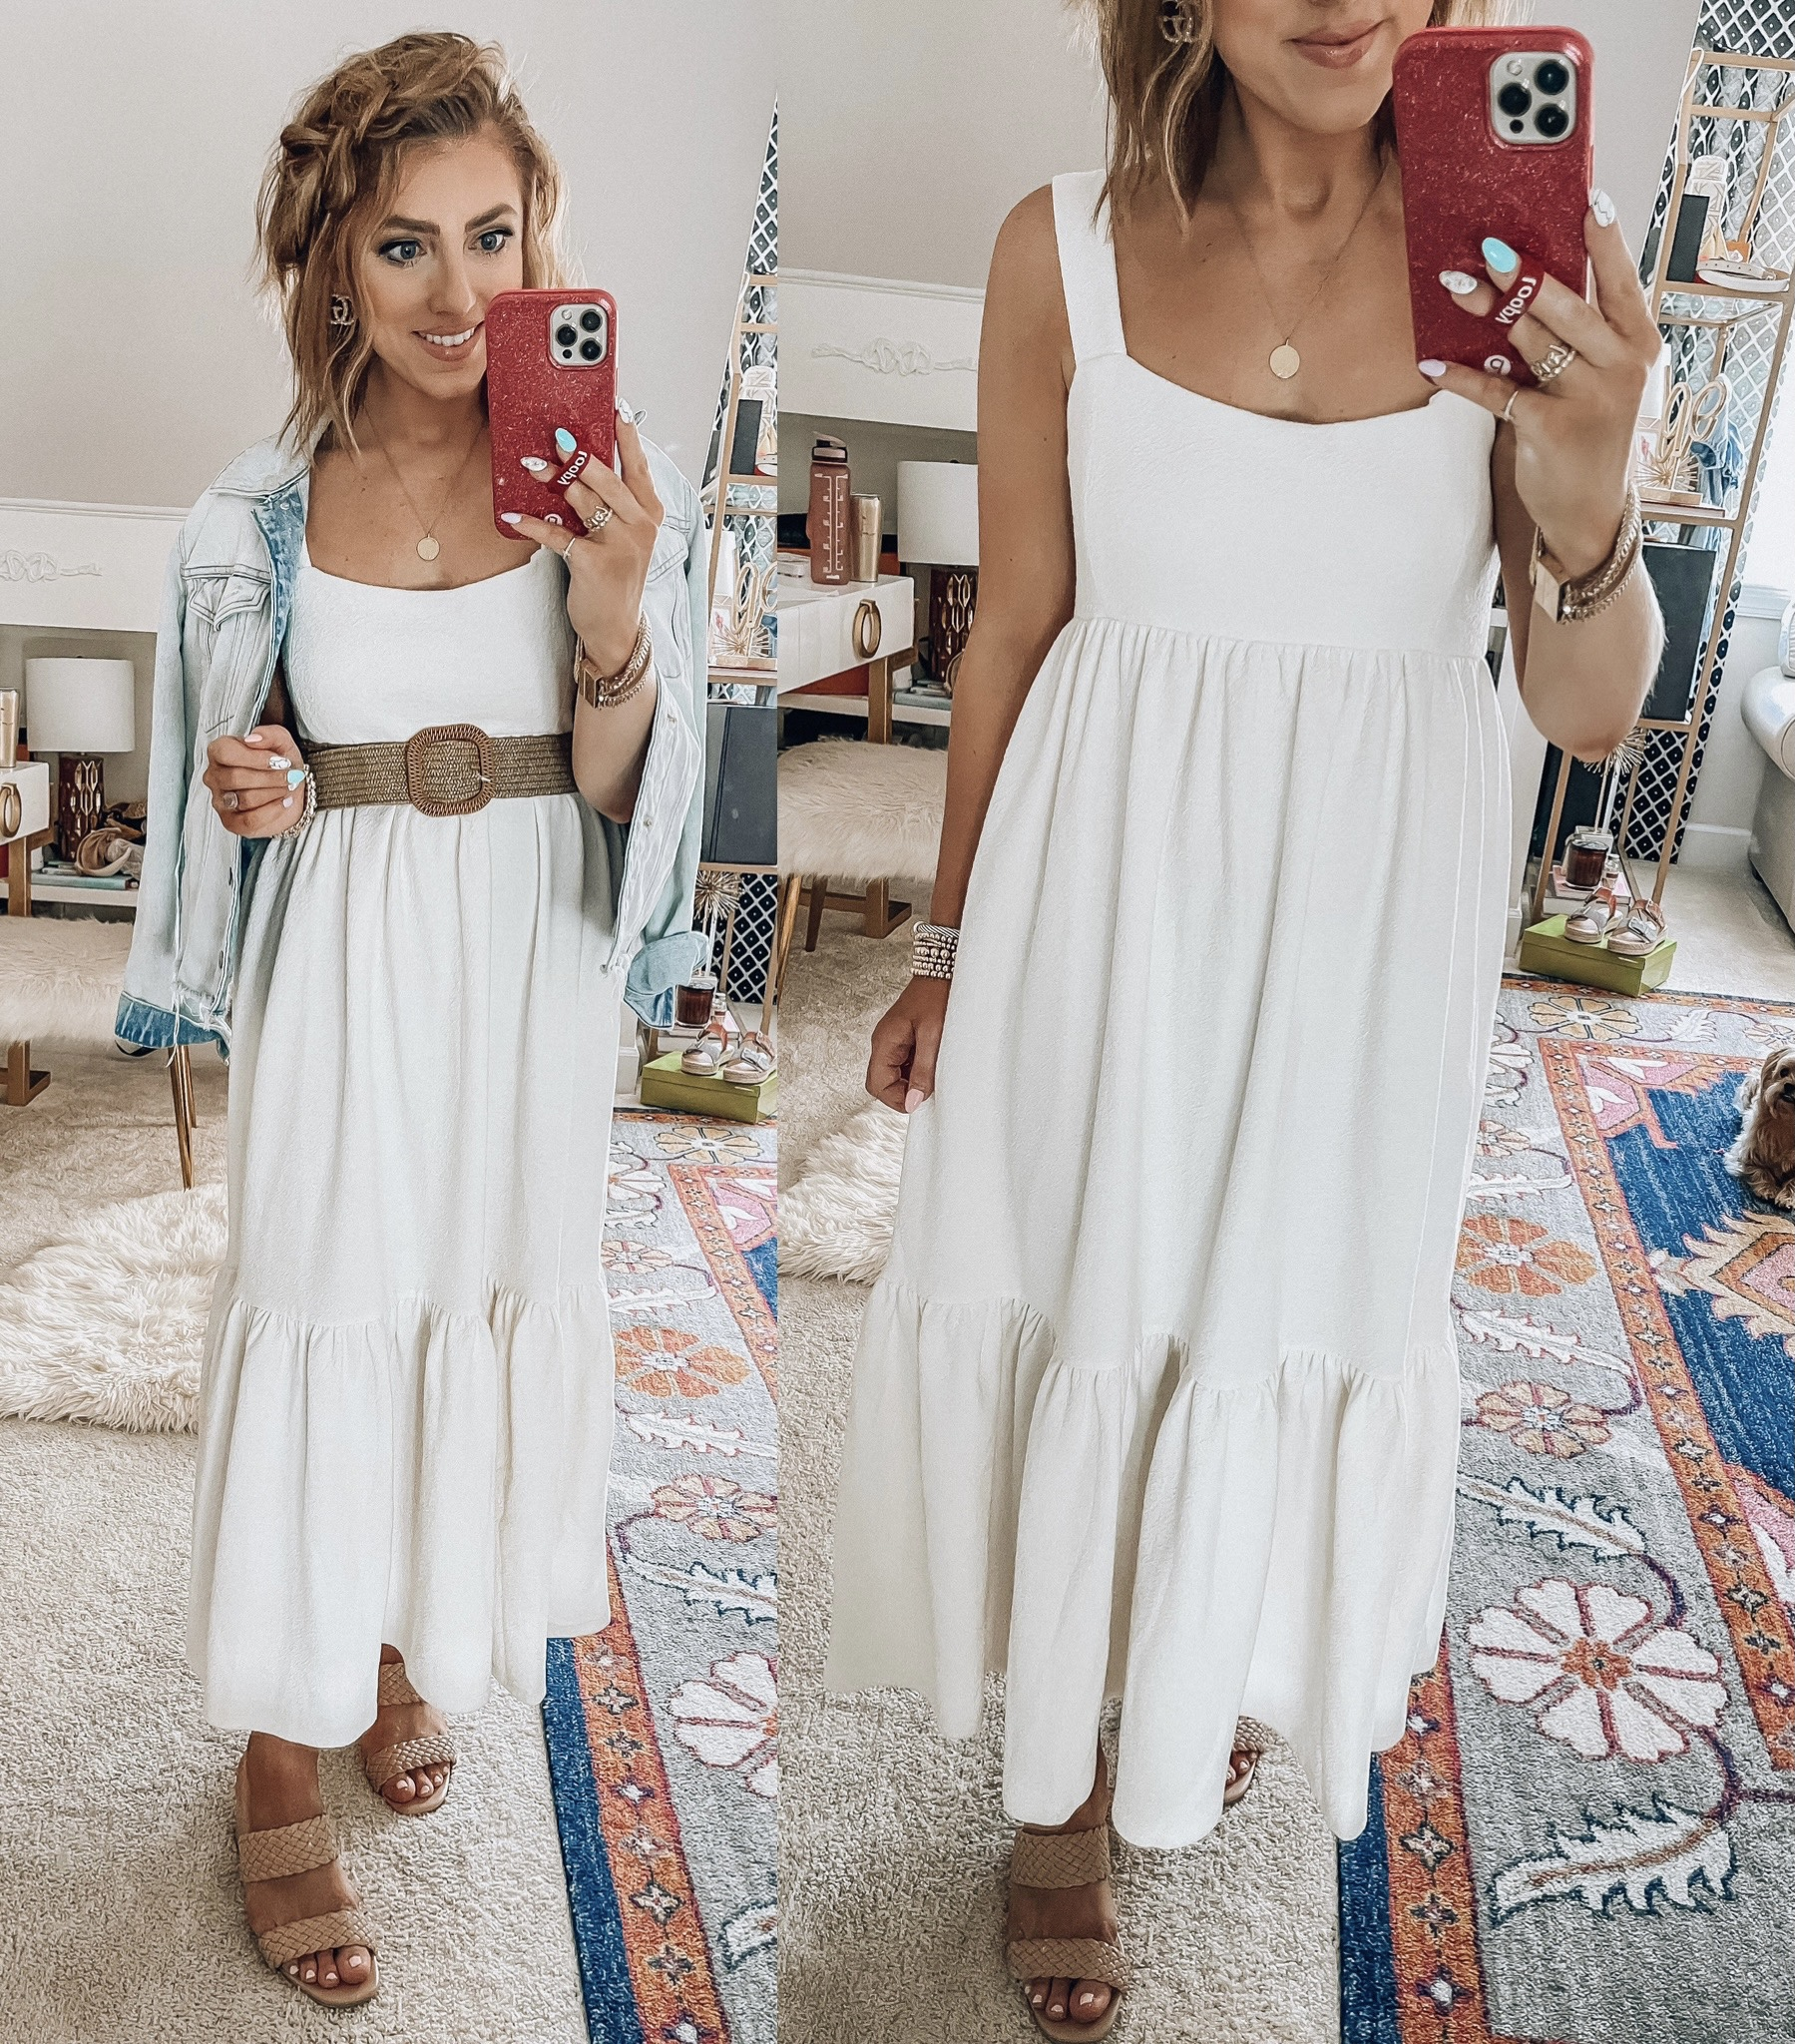 Recent Walmart Fashion Finds for Spring - Something Delightful Blog #walmartfashion #spring21fashion #affordablefashionfinds